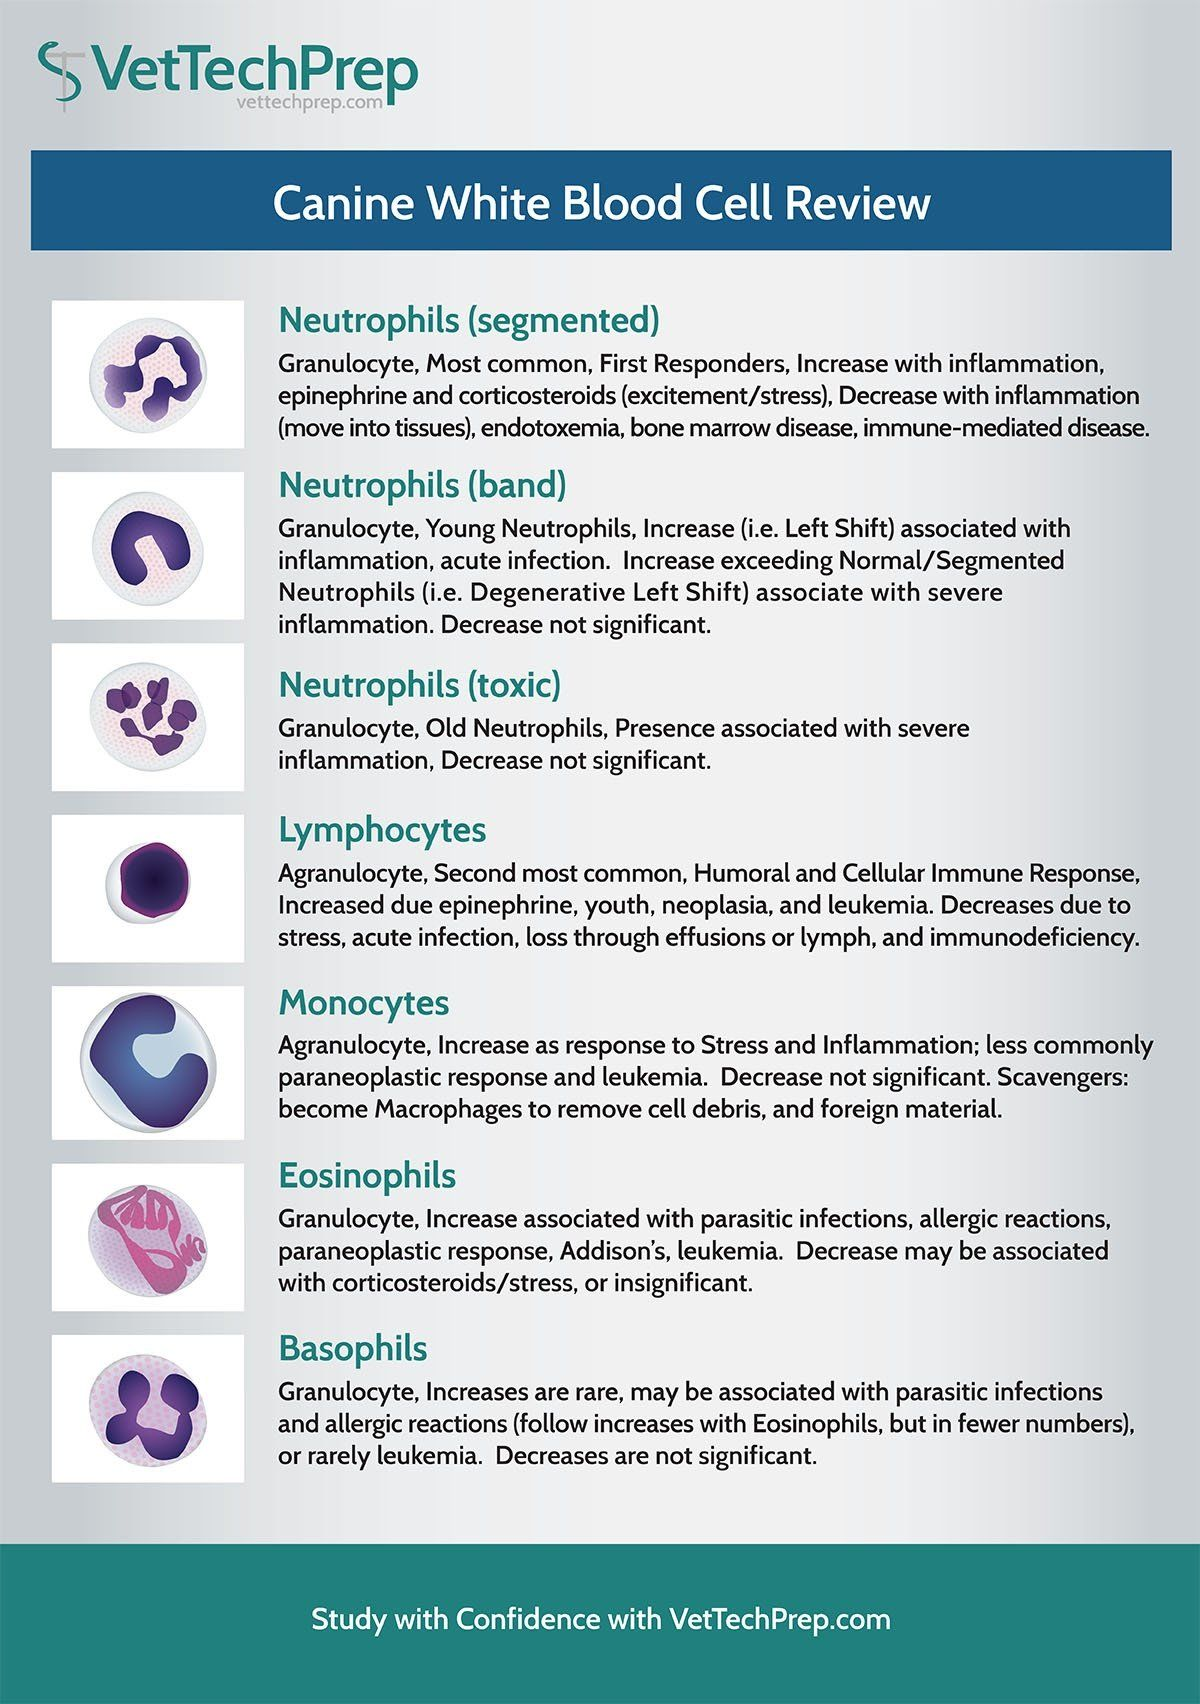 Infographic Canine White Blood Cell Review In